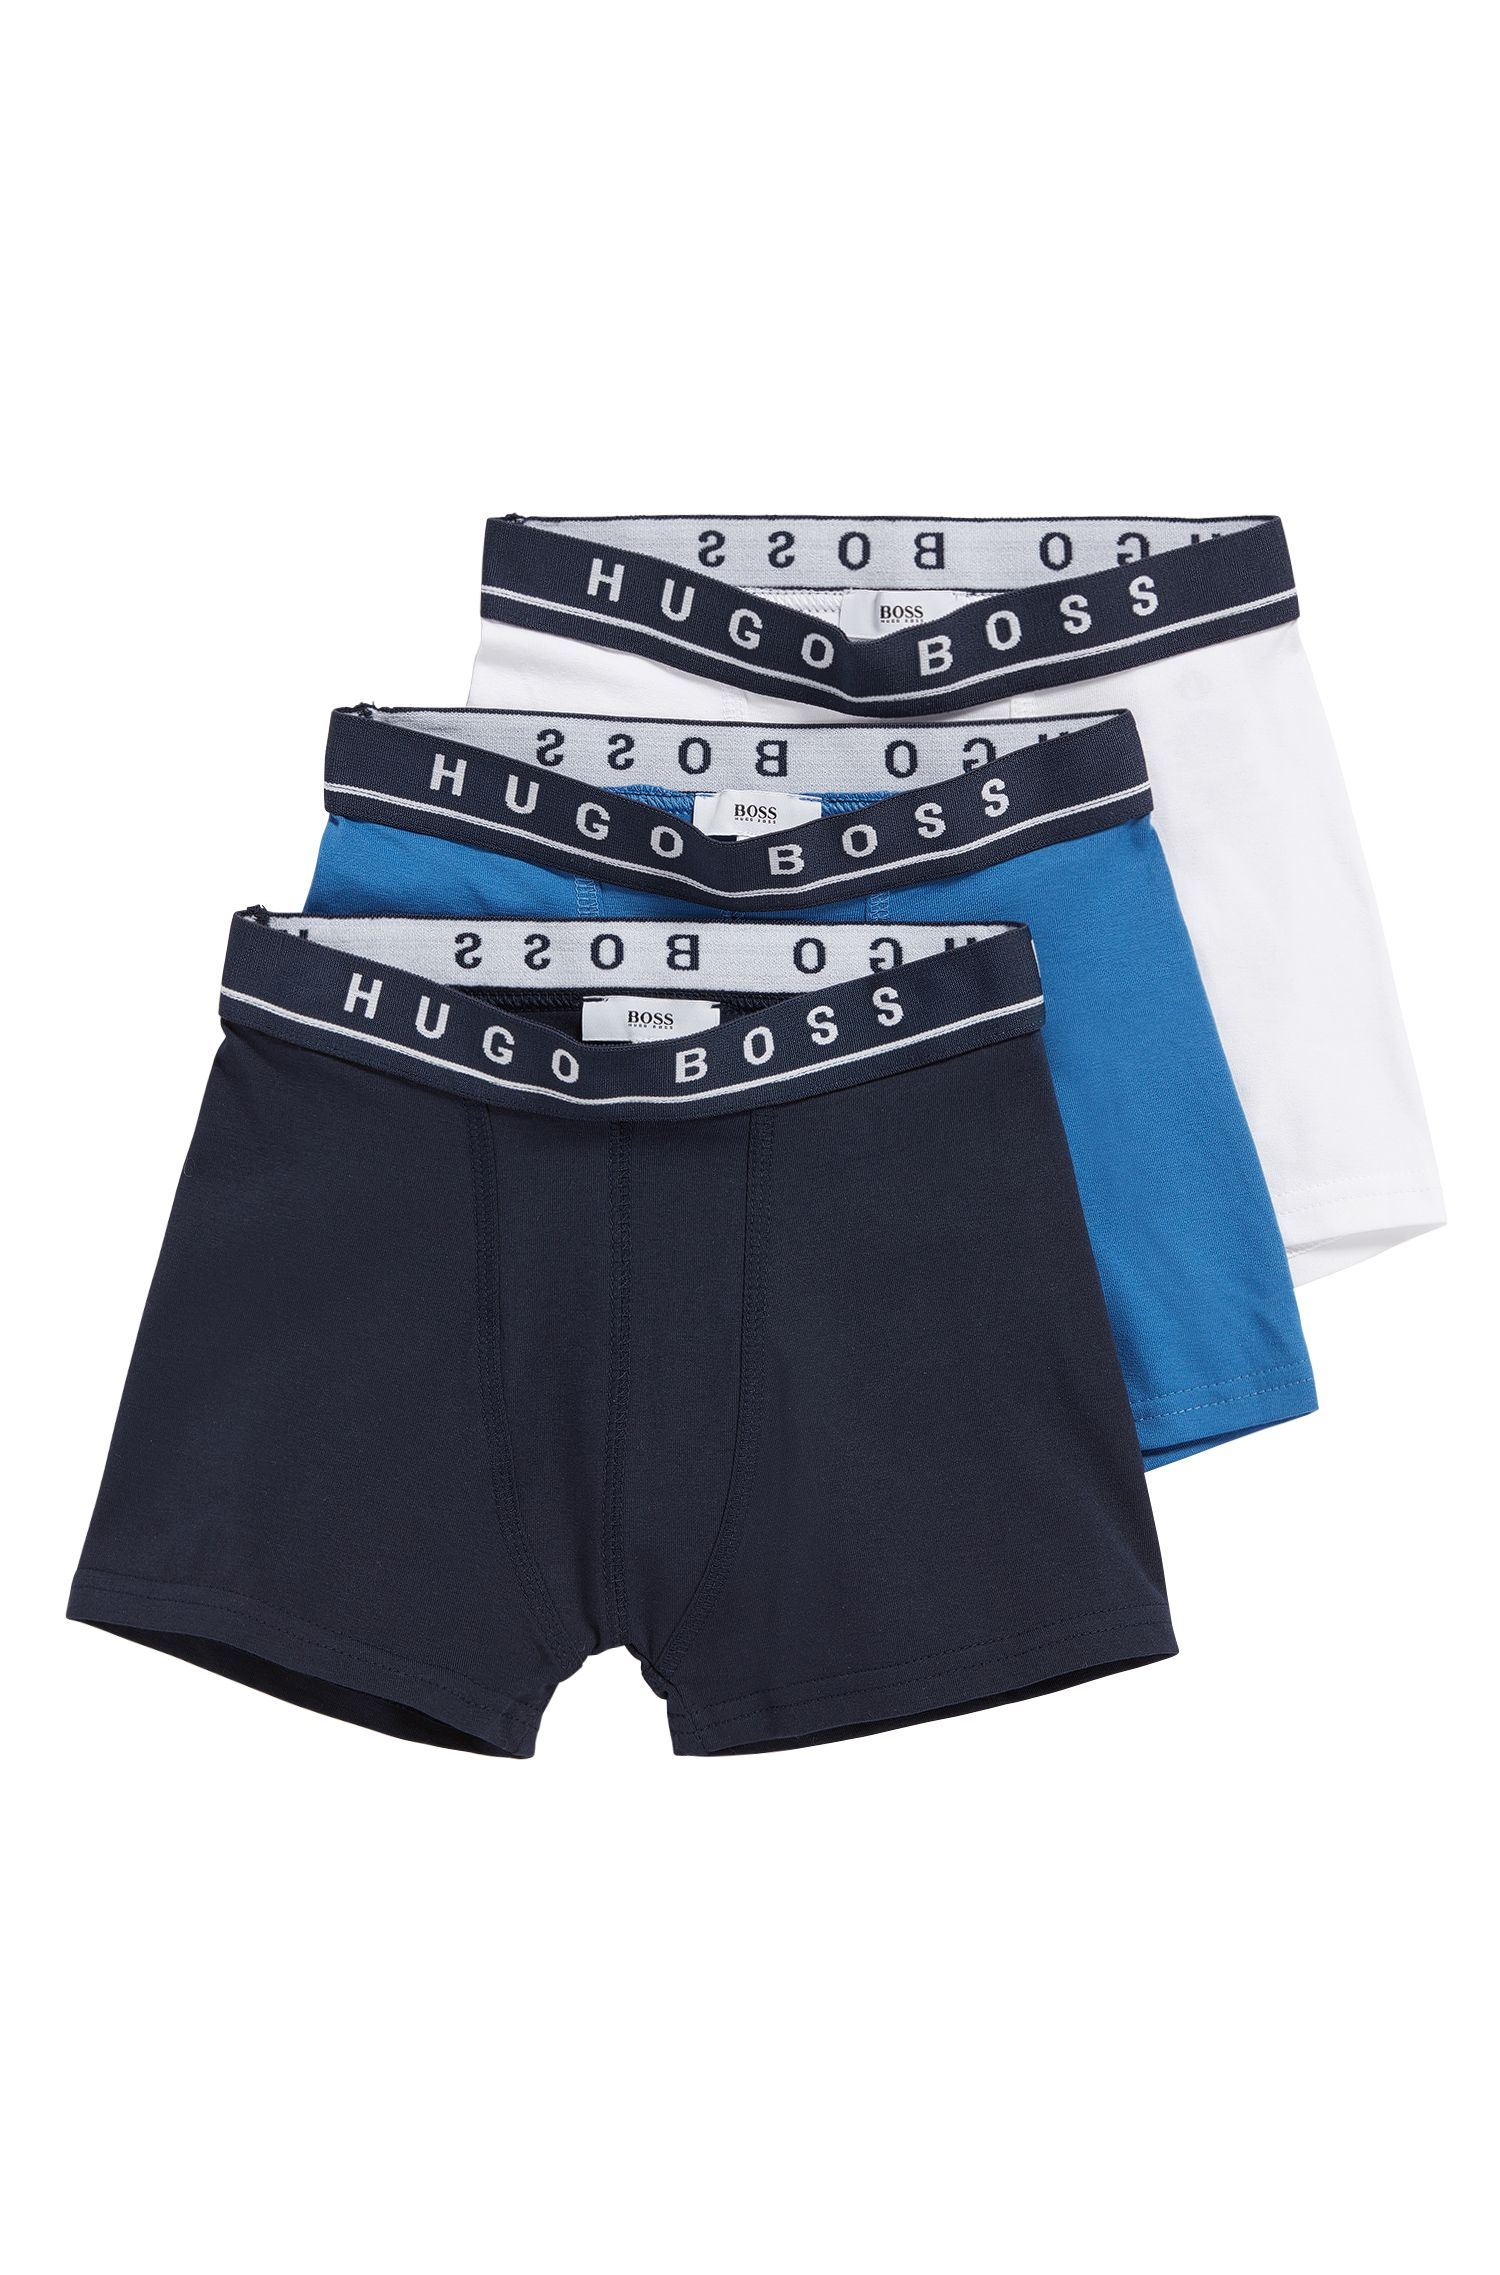 Kids' three-pack of cotton boxer shorts